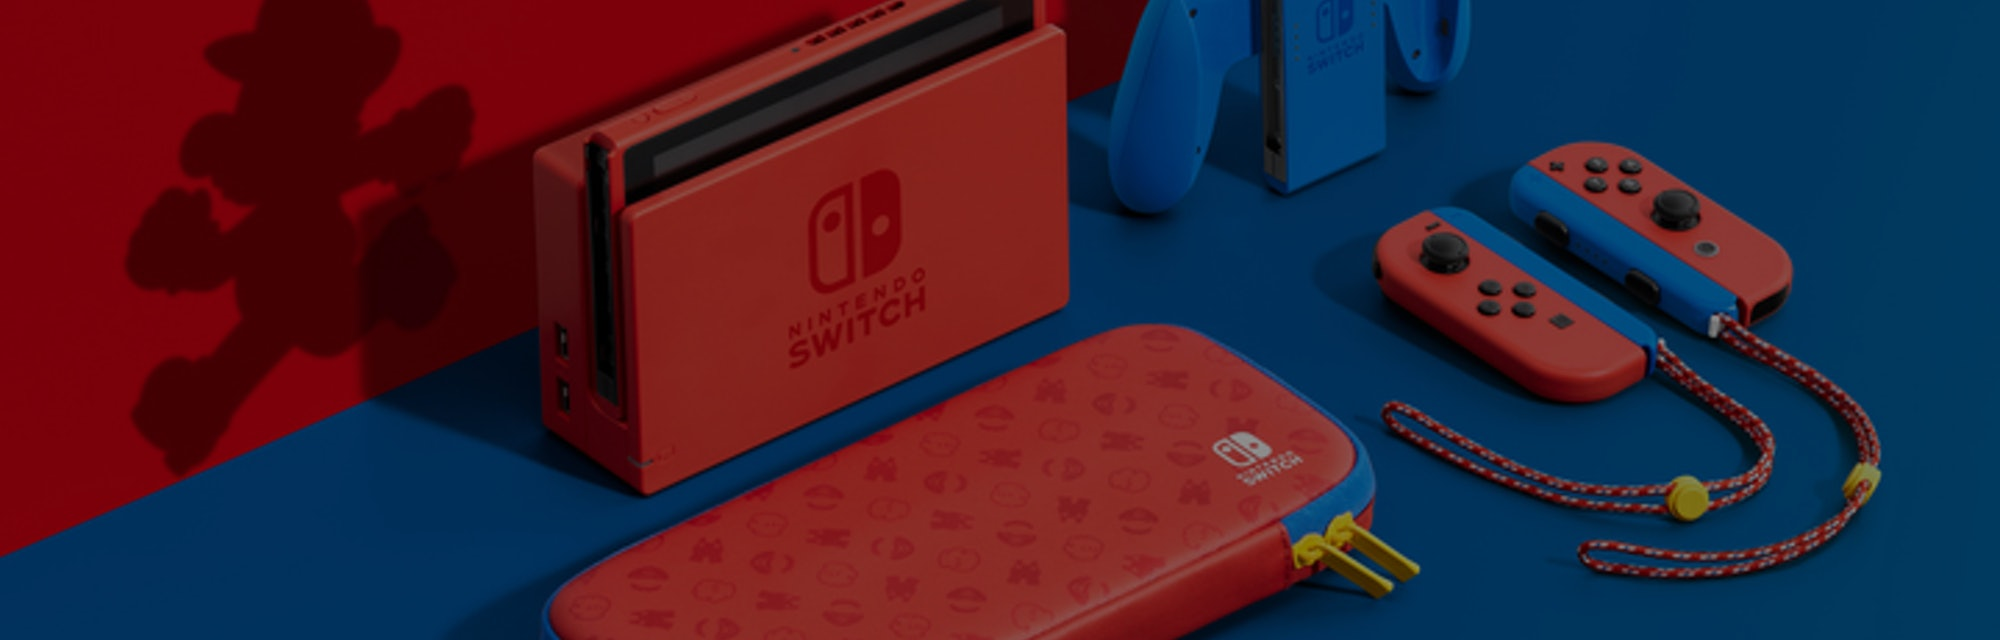 Nintendo's new Mario-themed Switch is the first new color option since 2017.